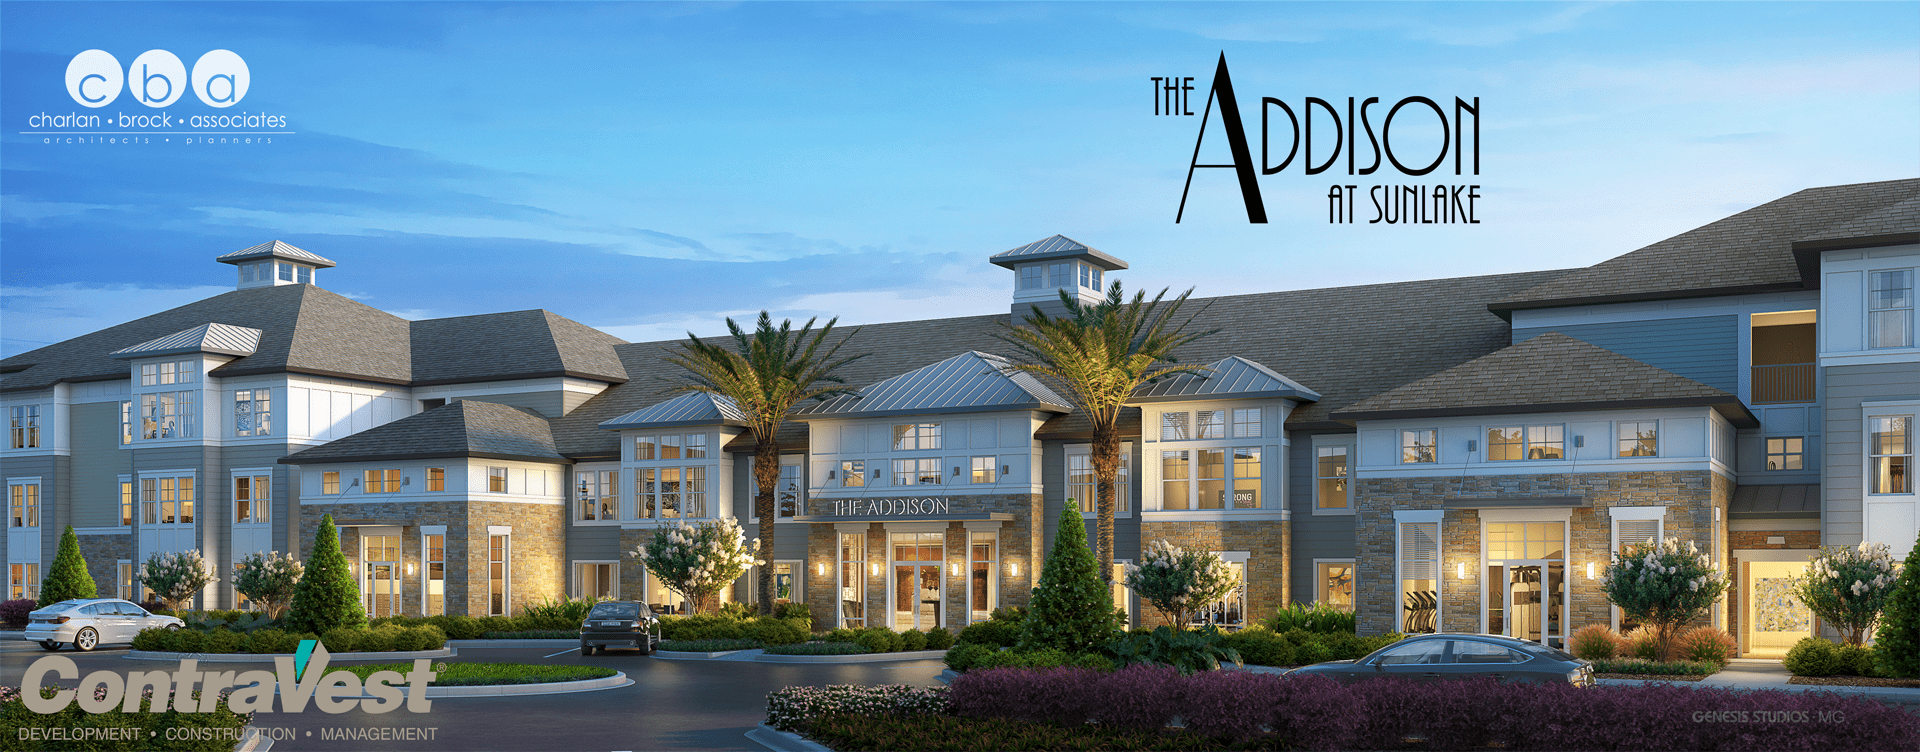 The Addison at Sunlake rendering